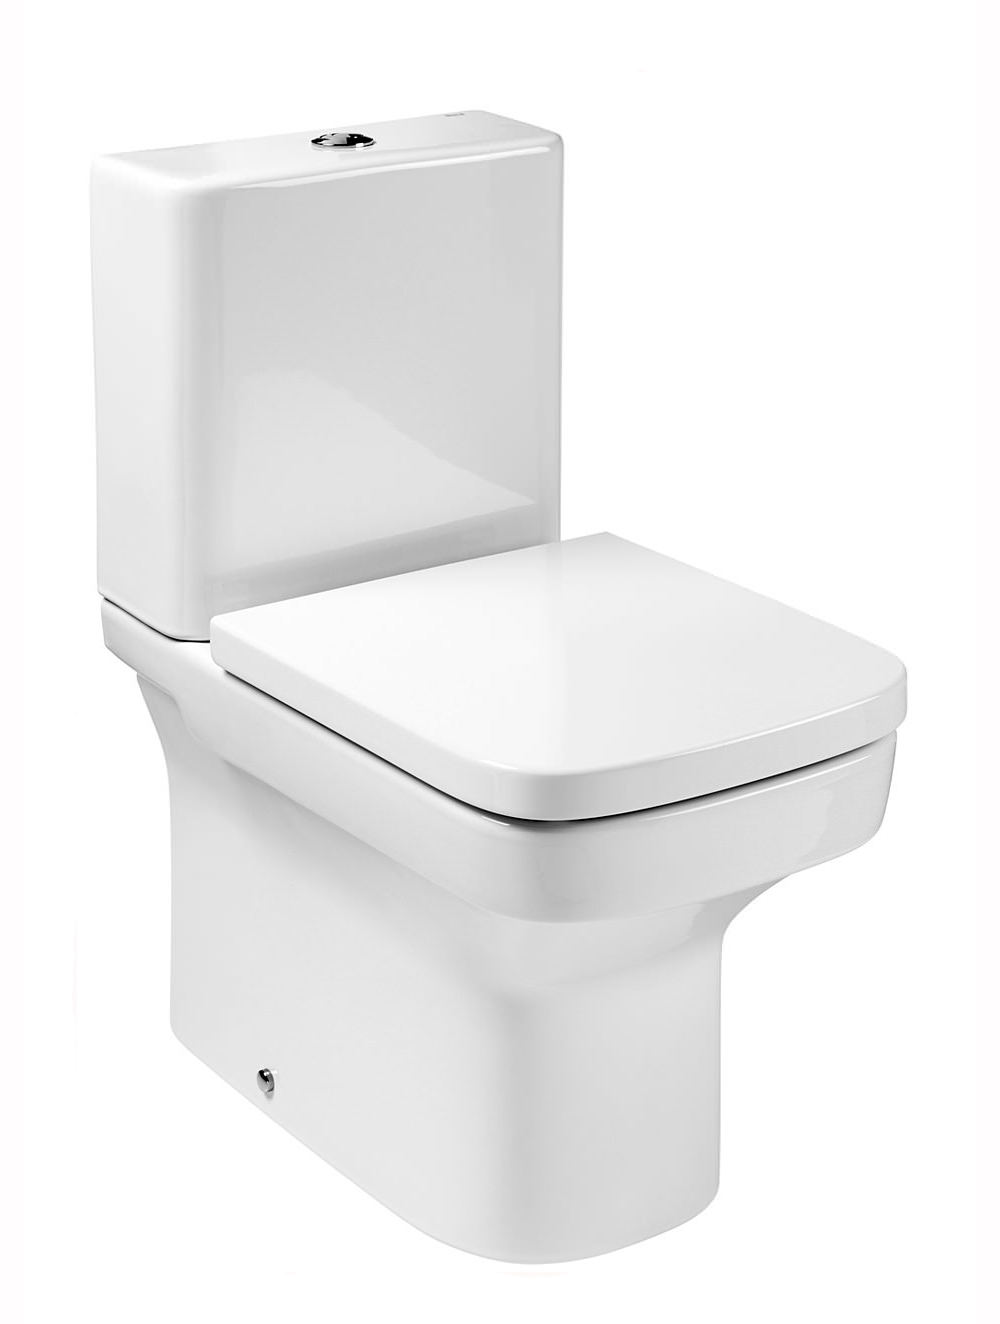 Roca dama n compact close coupled wc pan with fixing 600mm 34278w000